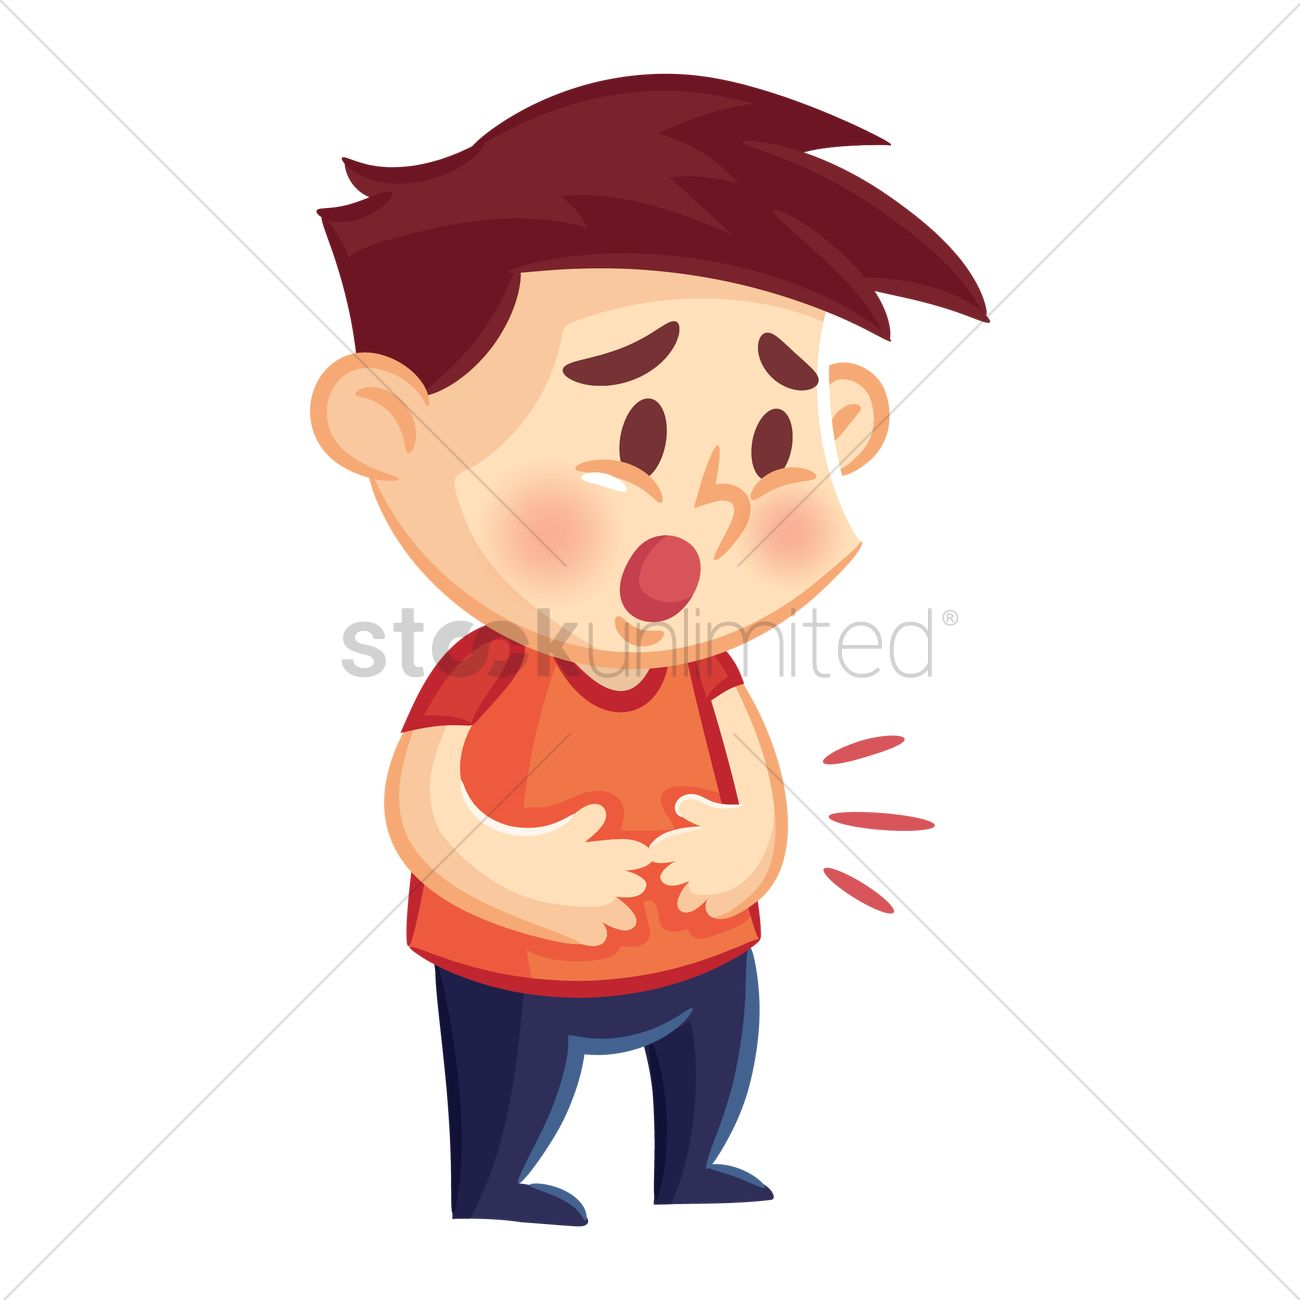 Boy Having Stomachache Vector Image 1956751 Stockunlimited